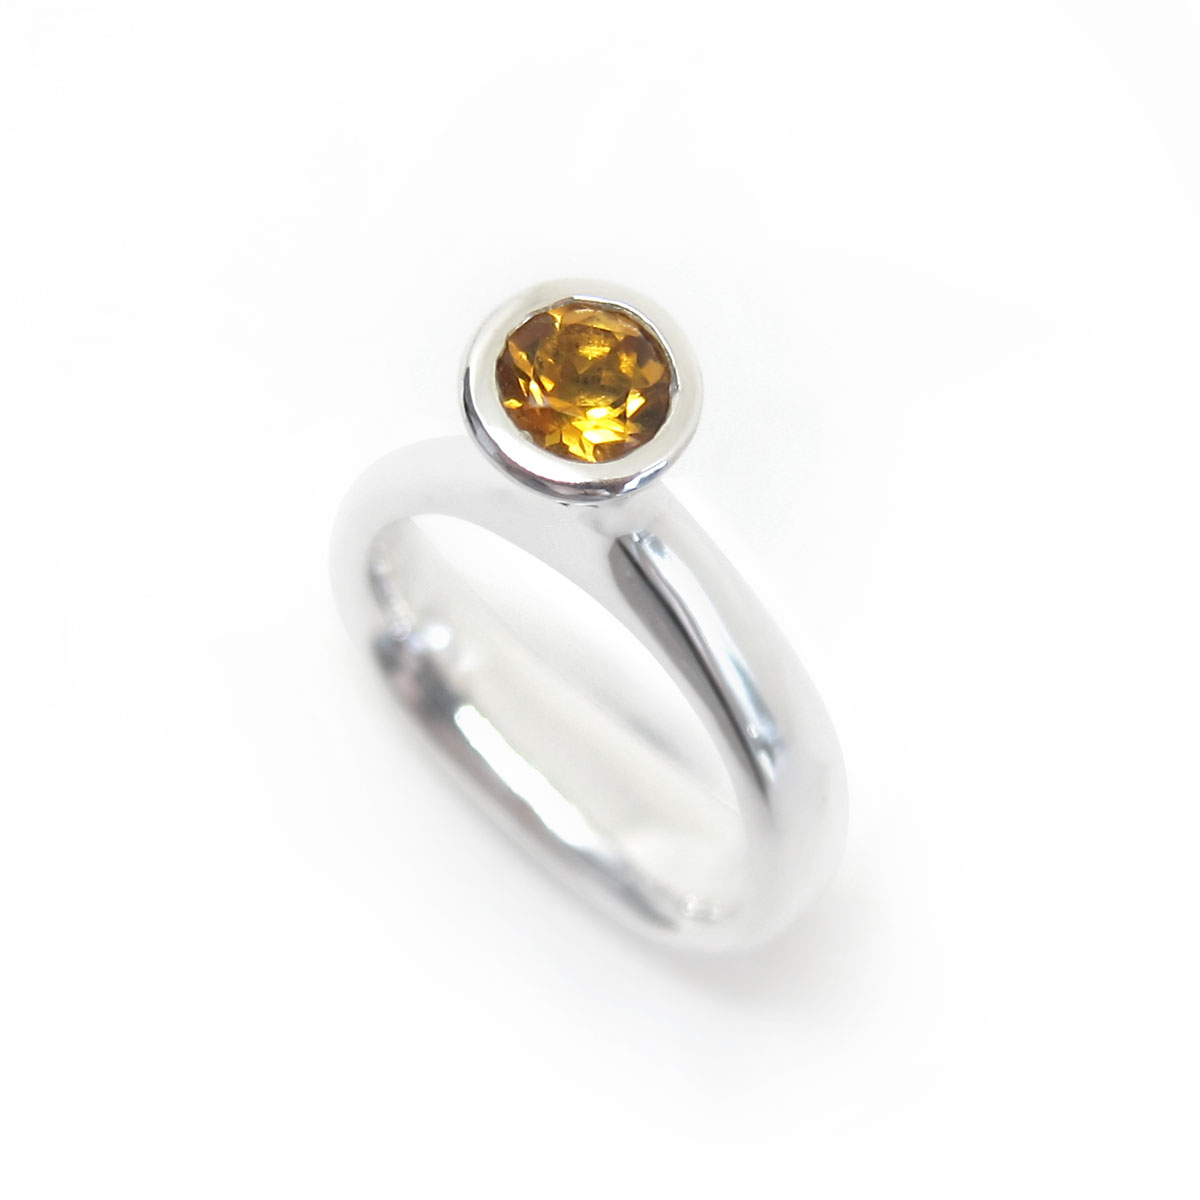 Unique citrine ring in sterling silver